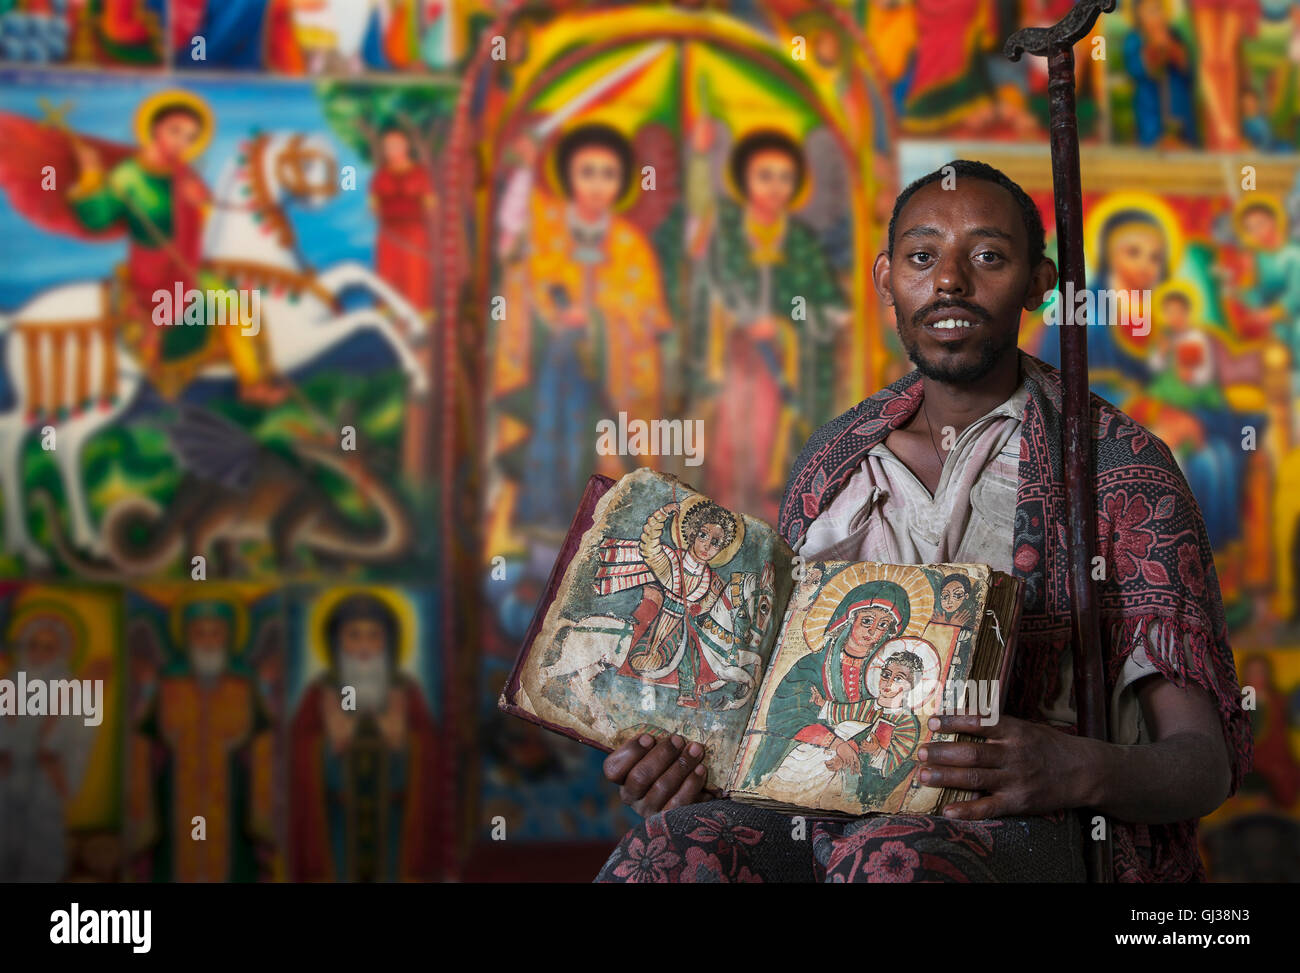 Priest showing an ancient religious book in an Orthodox Monastery